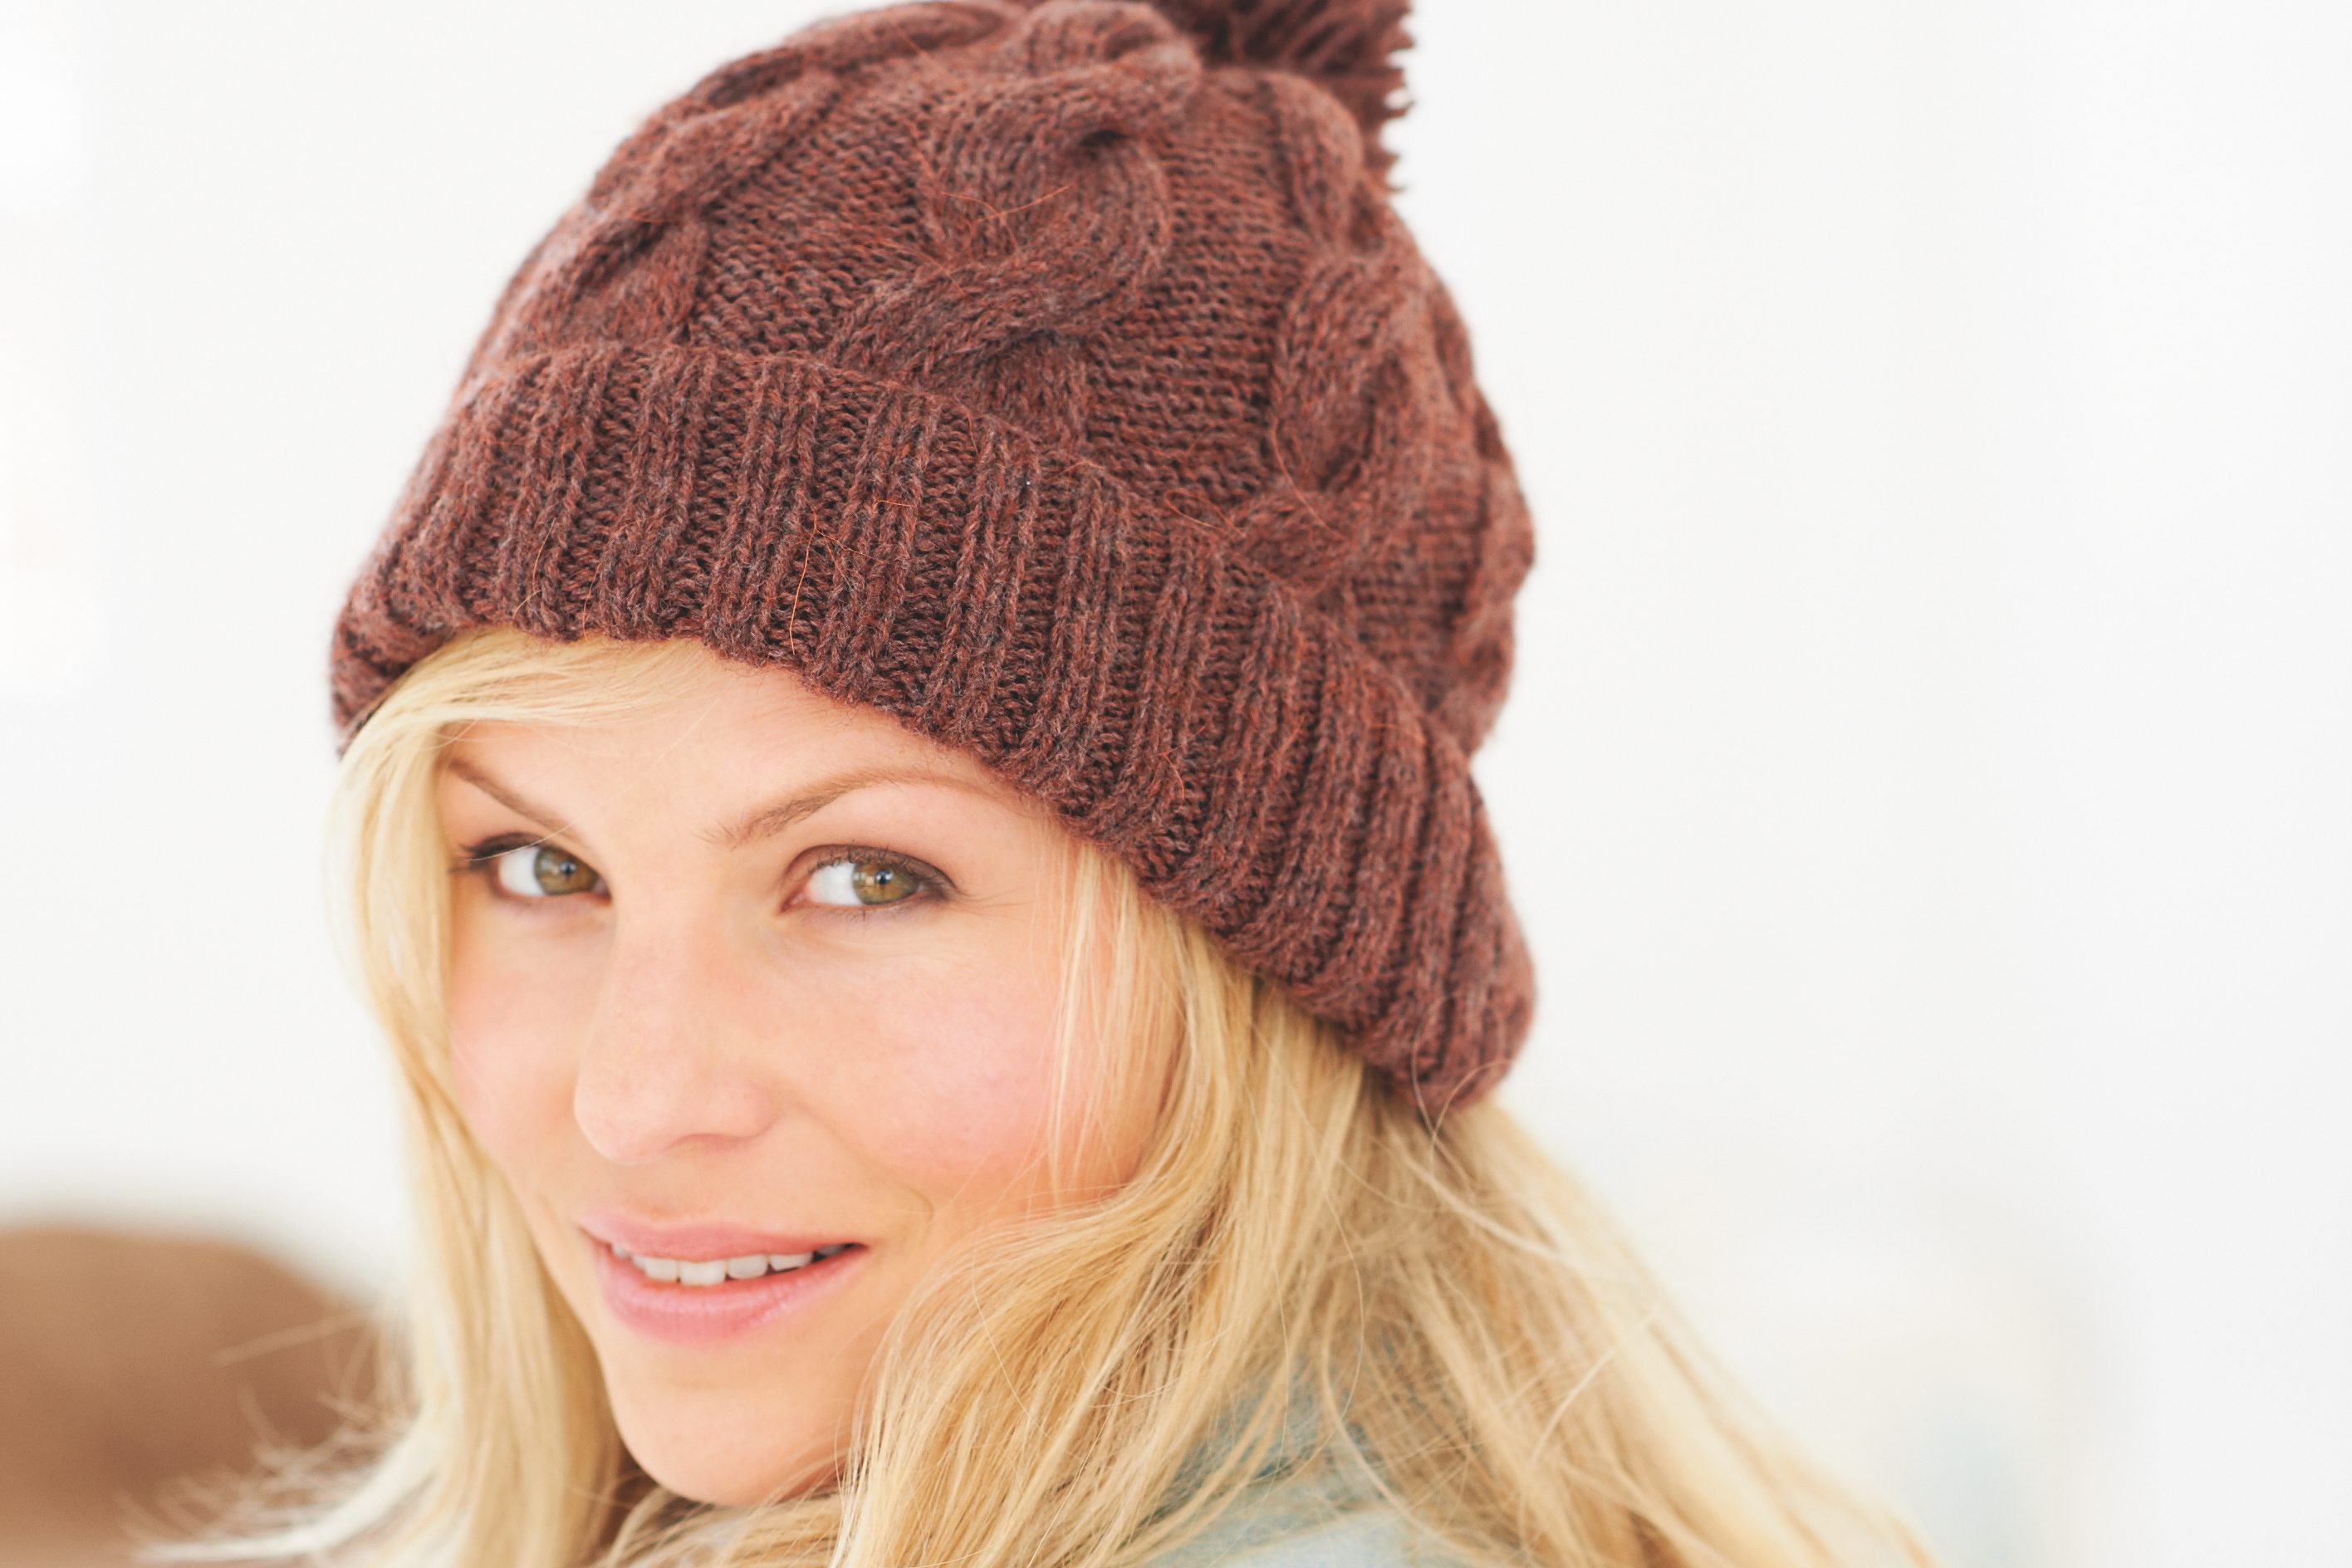 8. Free bobble hat knitting pattern